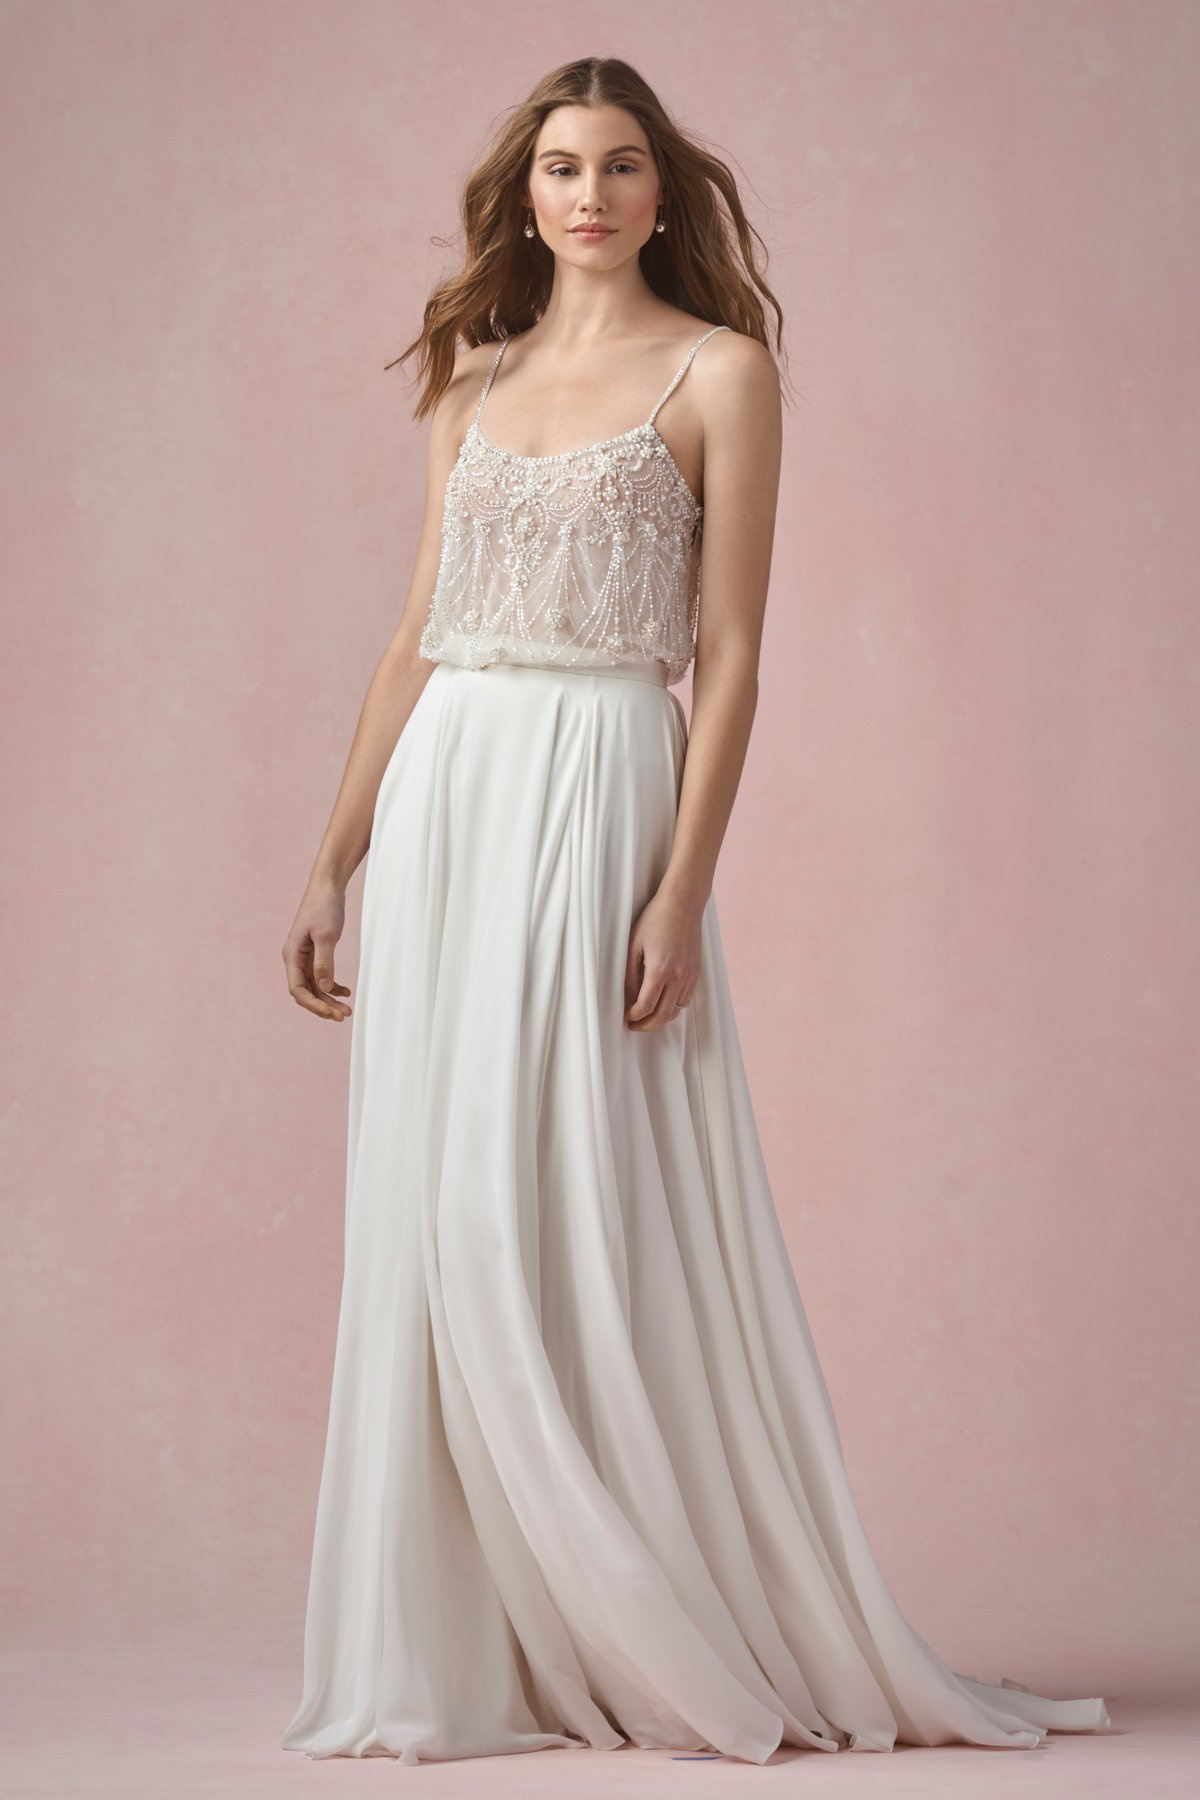 Willowby by Watters Ruby is an effortless bridal skirt